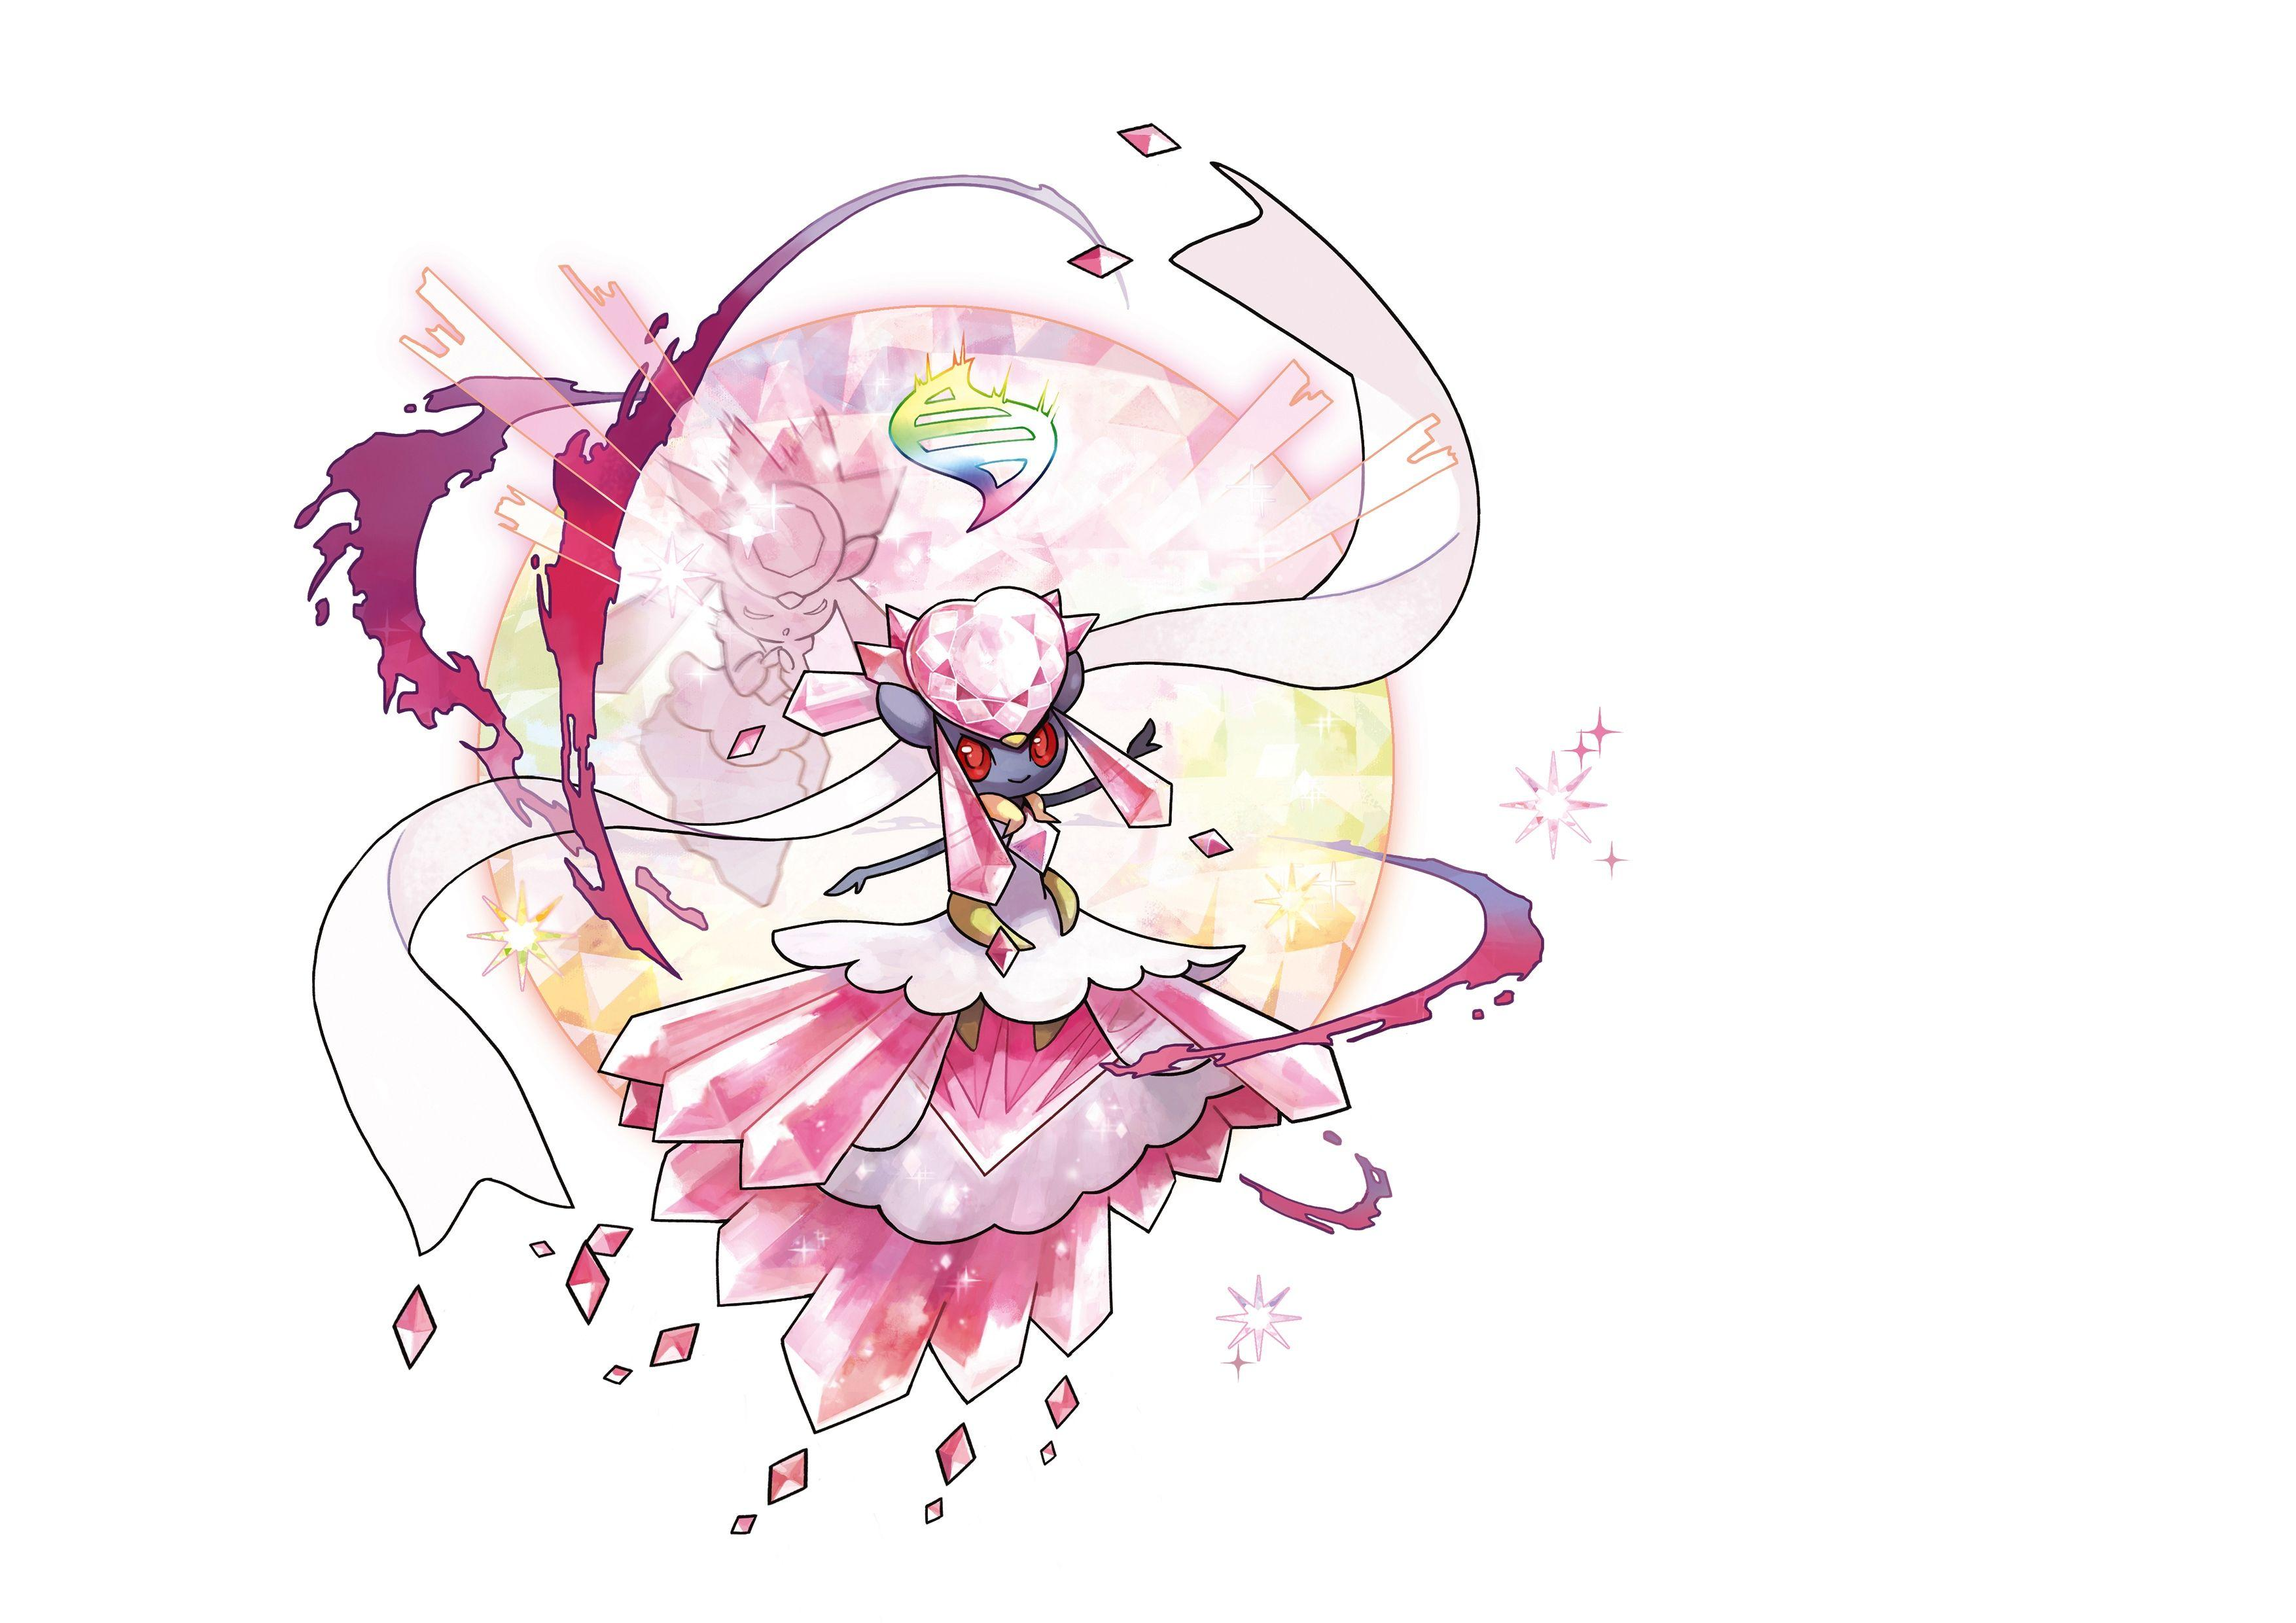 Pokémon image Mega Diancie HD wallpapers and backgrounds photos